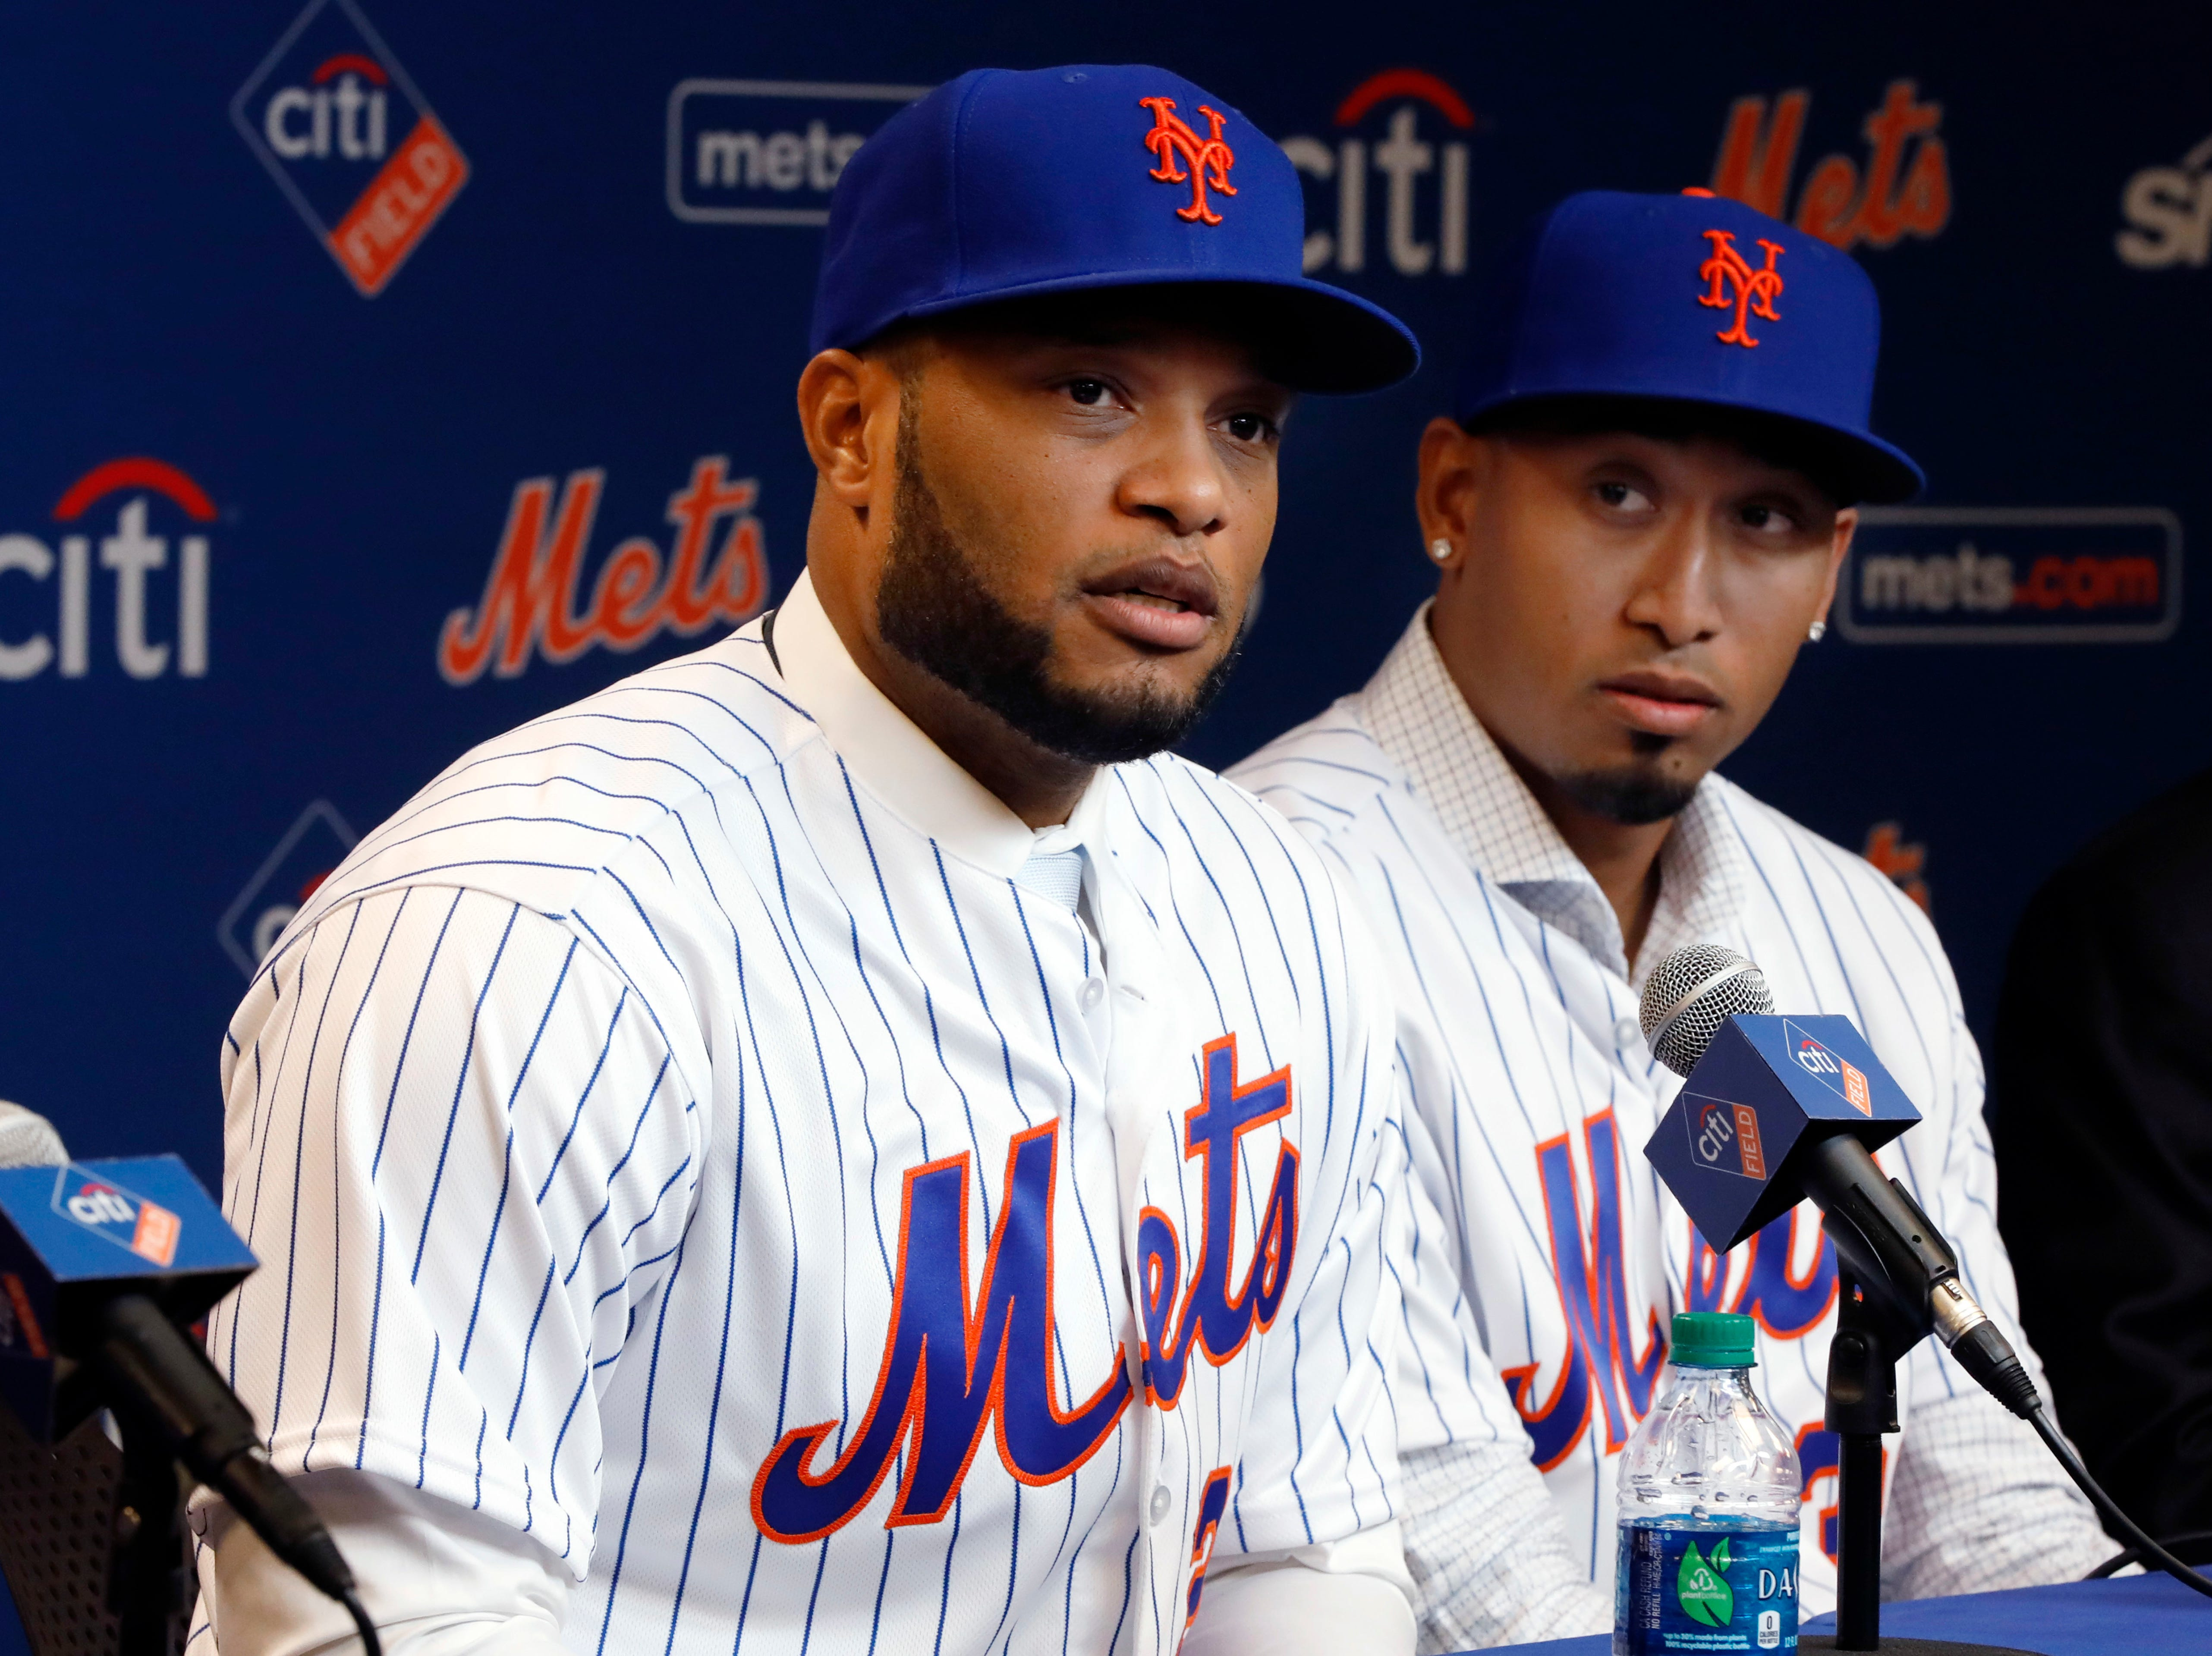 With everybody making moves, the NL East is suddenly baseball's most compelling division